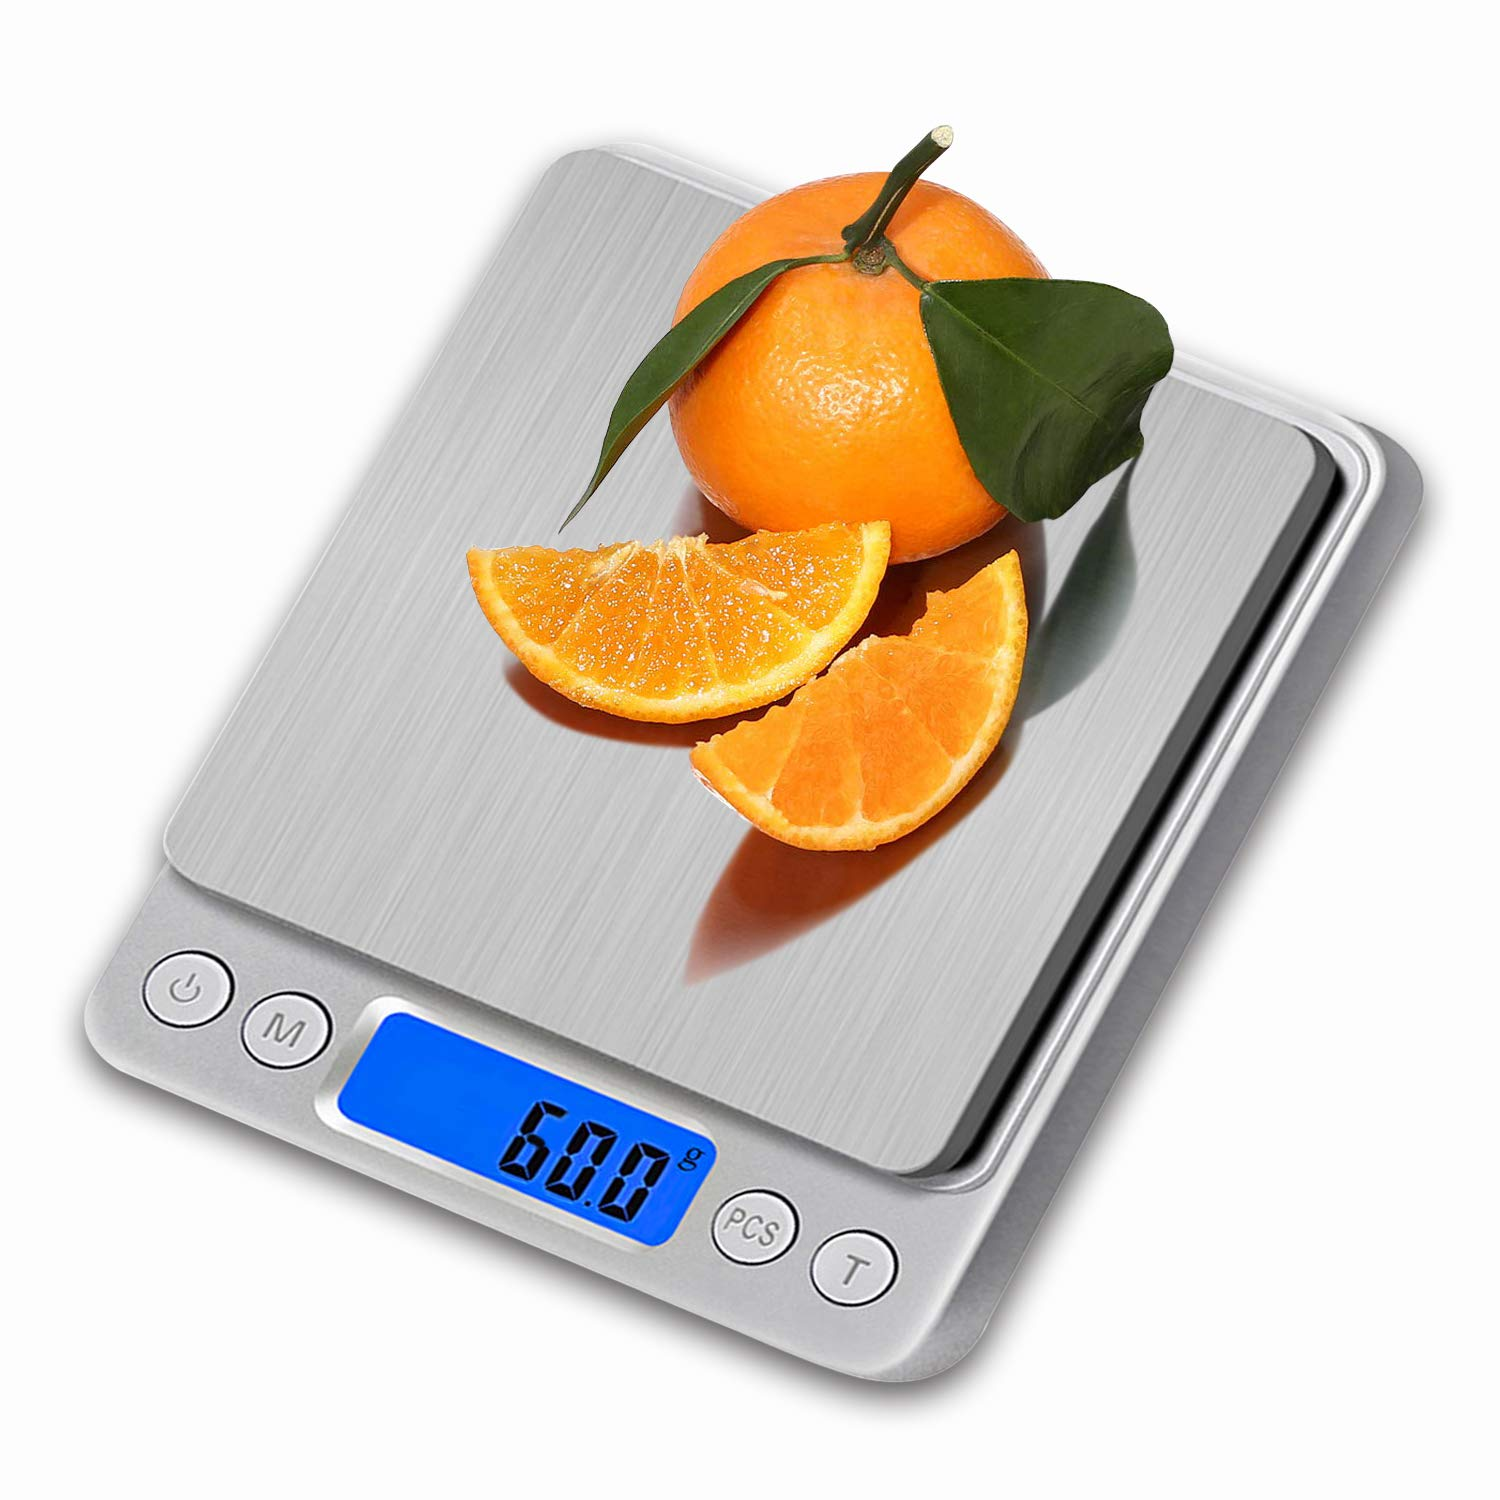 Upgraded Digital Kitchen Scale 3000g/ 0.1g, Pocket Jewelry Scale, Cooking Food Scale, Back-Lit LCD Display, 2 Trays, 6 Units, Auto Off, Tare, PCS, Stainless Steel